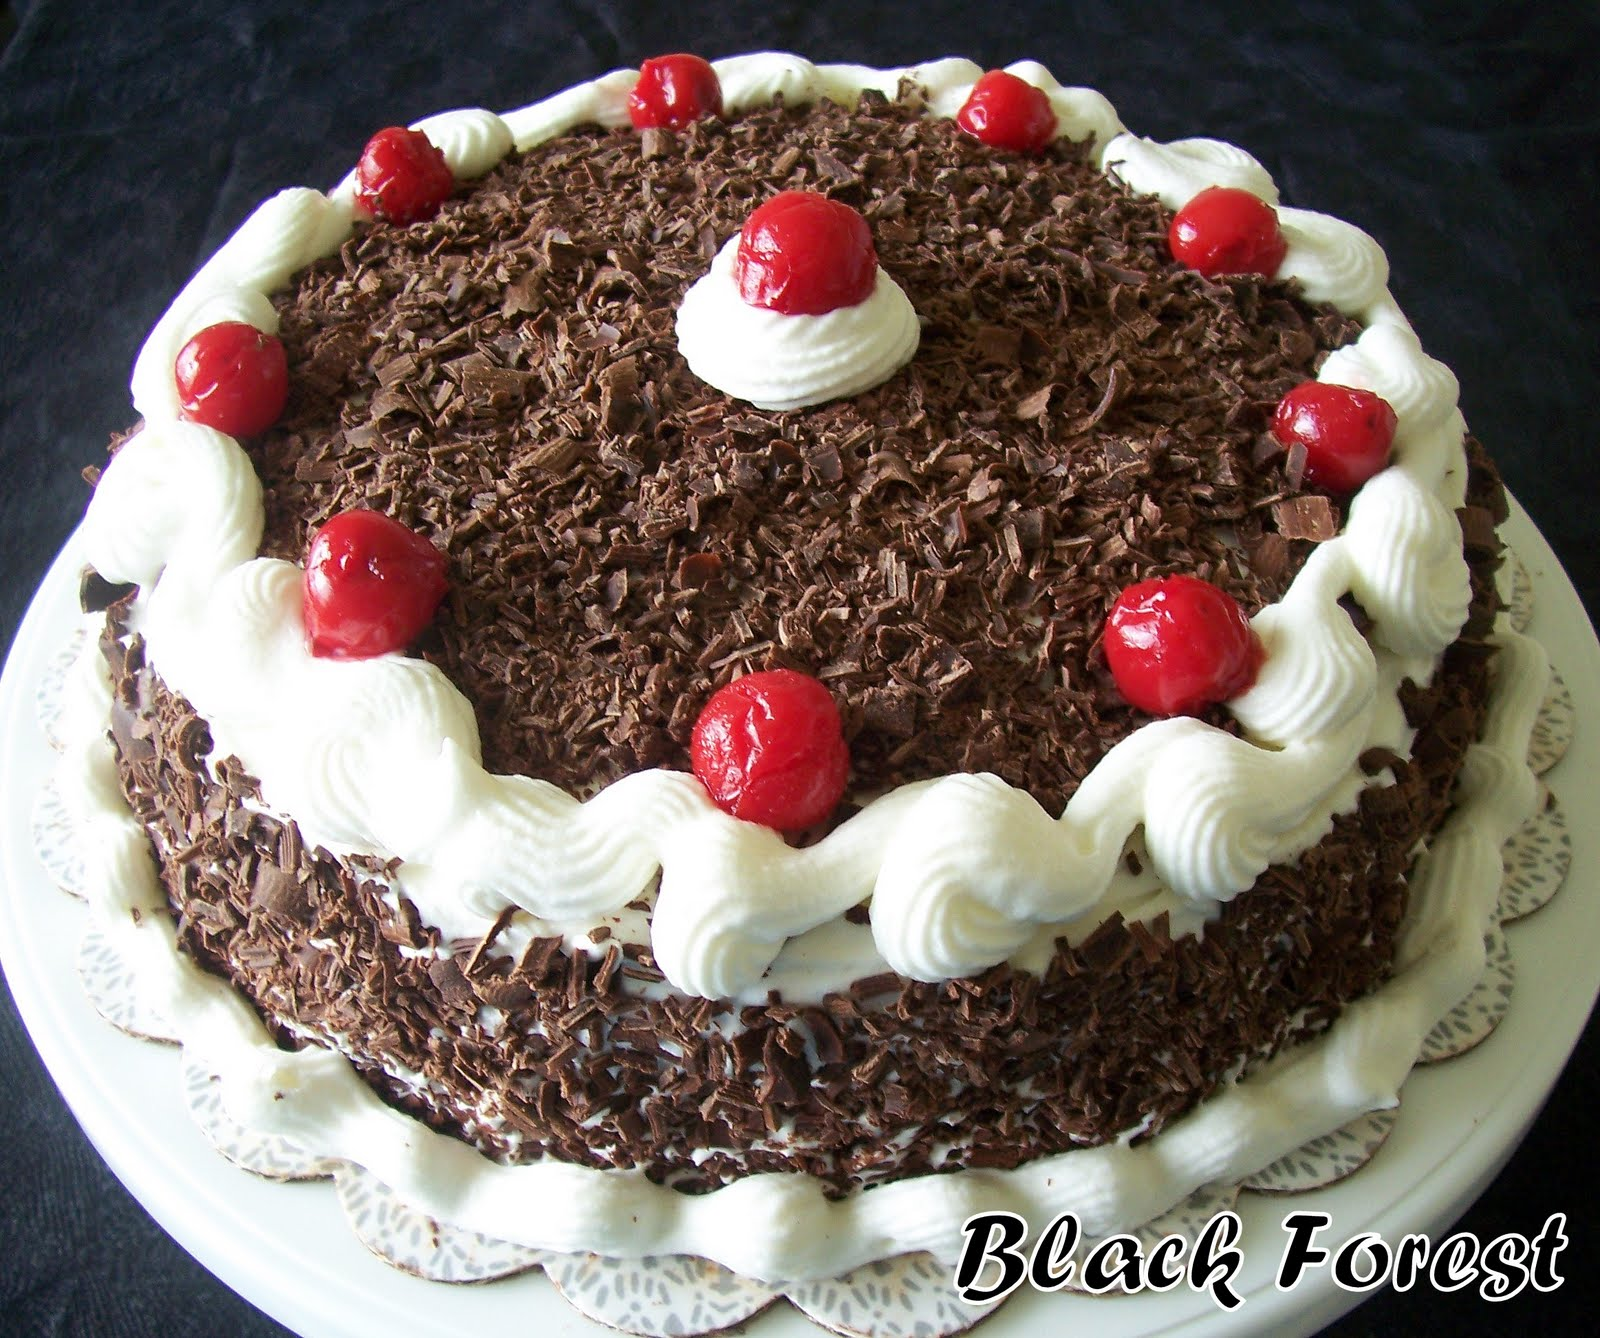 Tasty Treats: Black Forest Cake